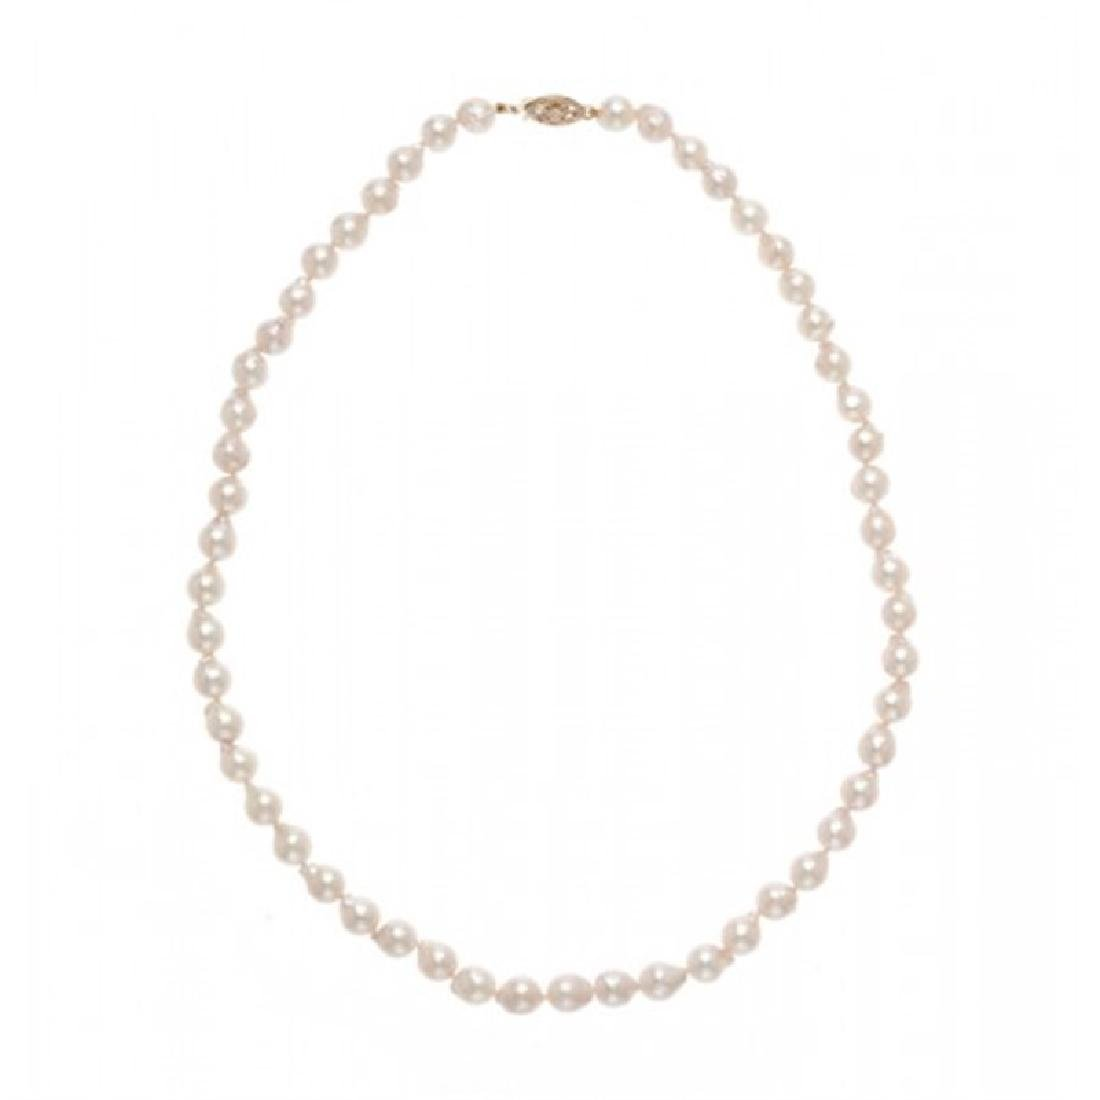 6.5-7.0mm Japansese Akoya Pearl Necklace